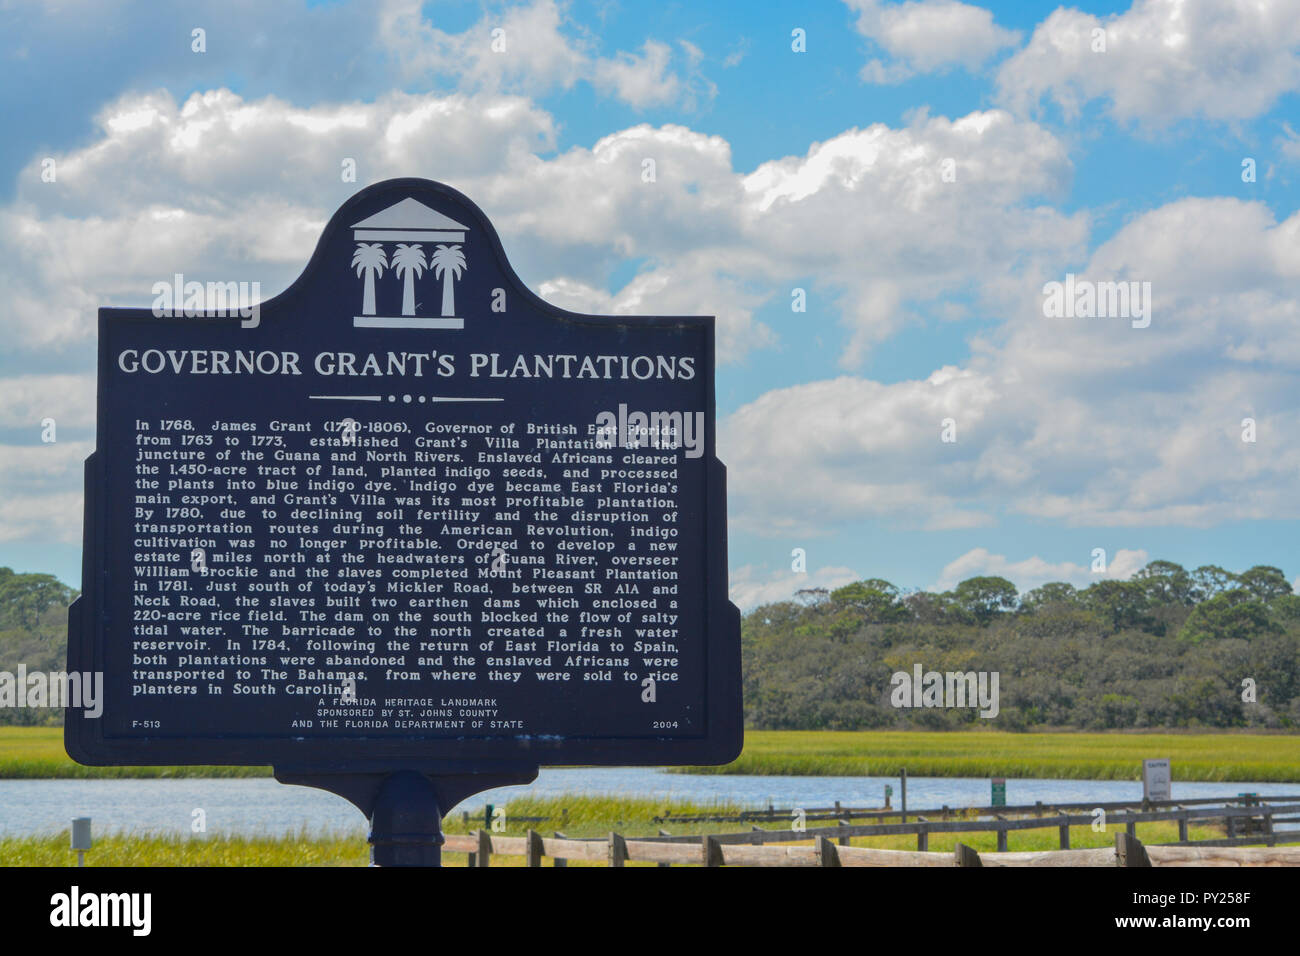 Governor Grants Plantations Landmark sign, in St Johns County, Florida - Stock Image